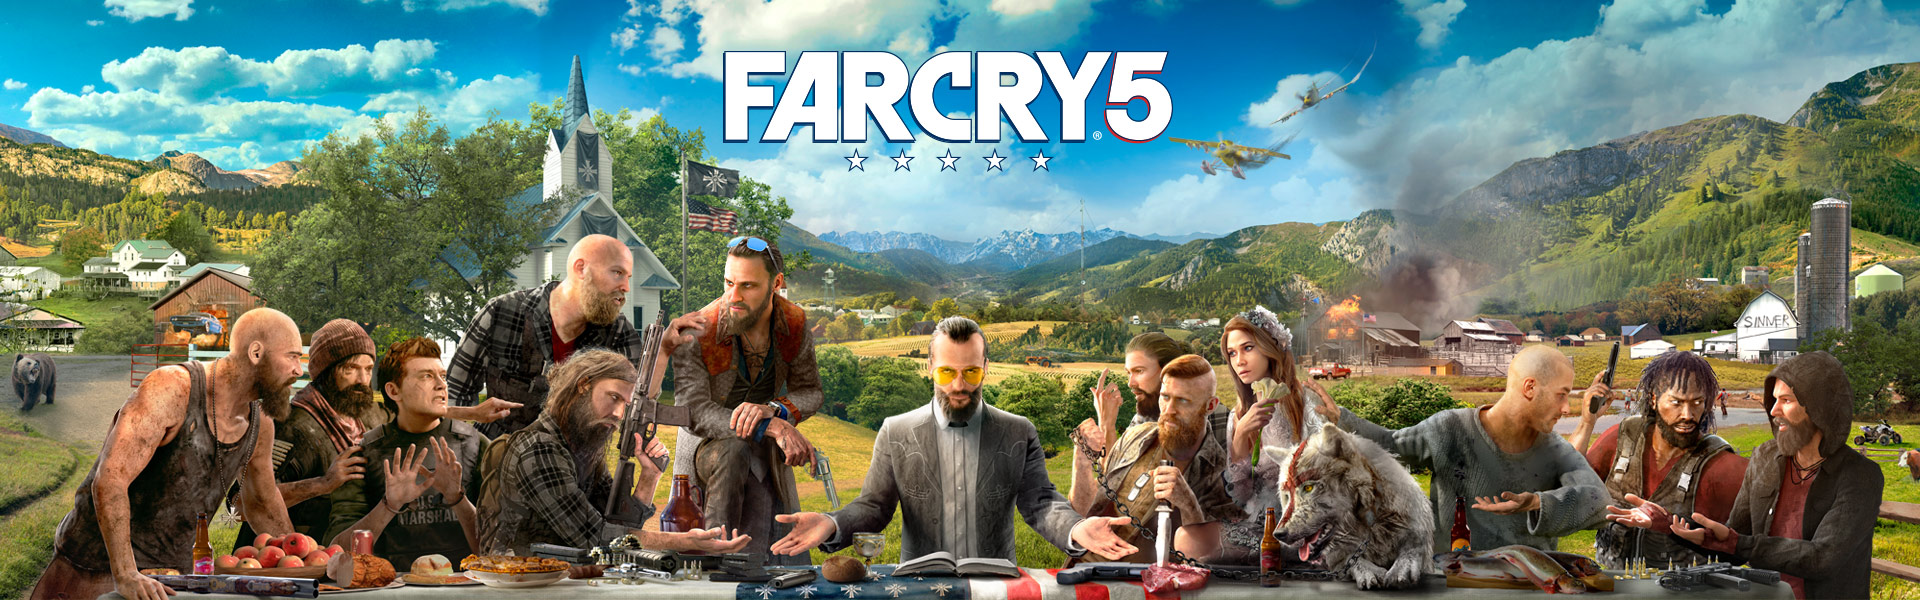 far cry 5 requisitos